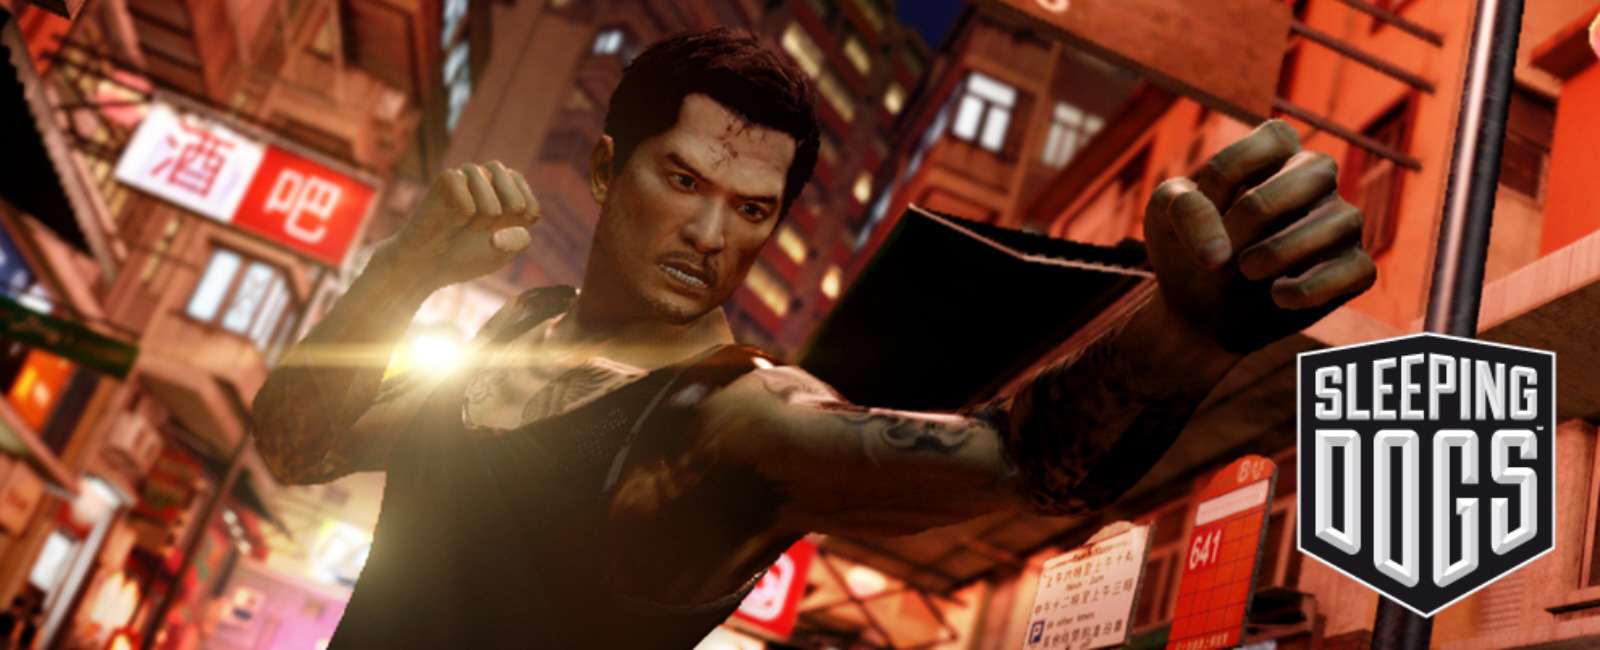 Sleeping Dogs HD & Widescreen Wallpaper 0.812437988604218